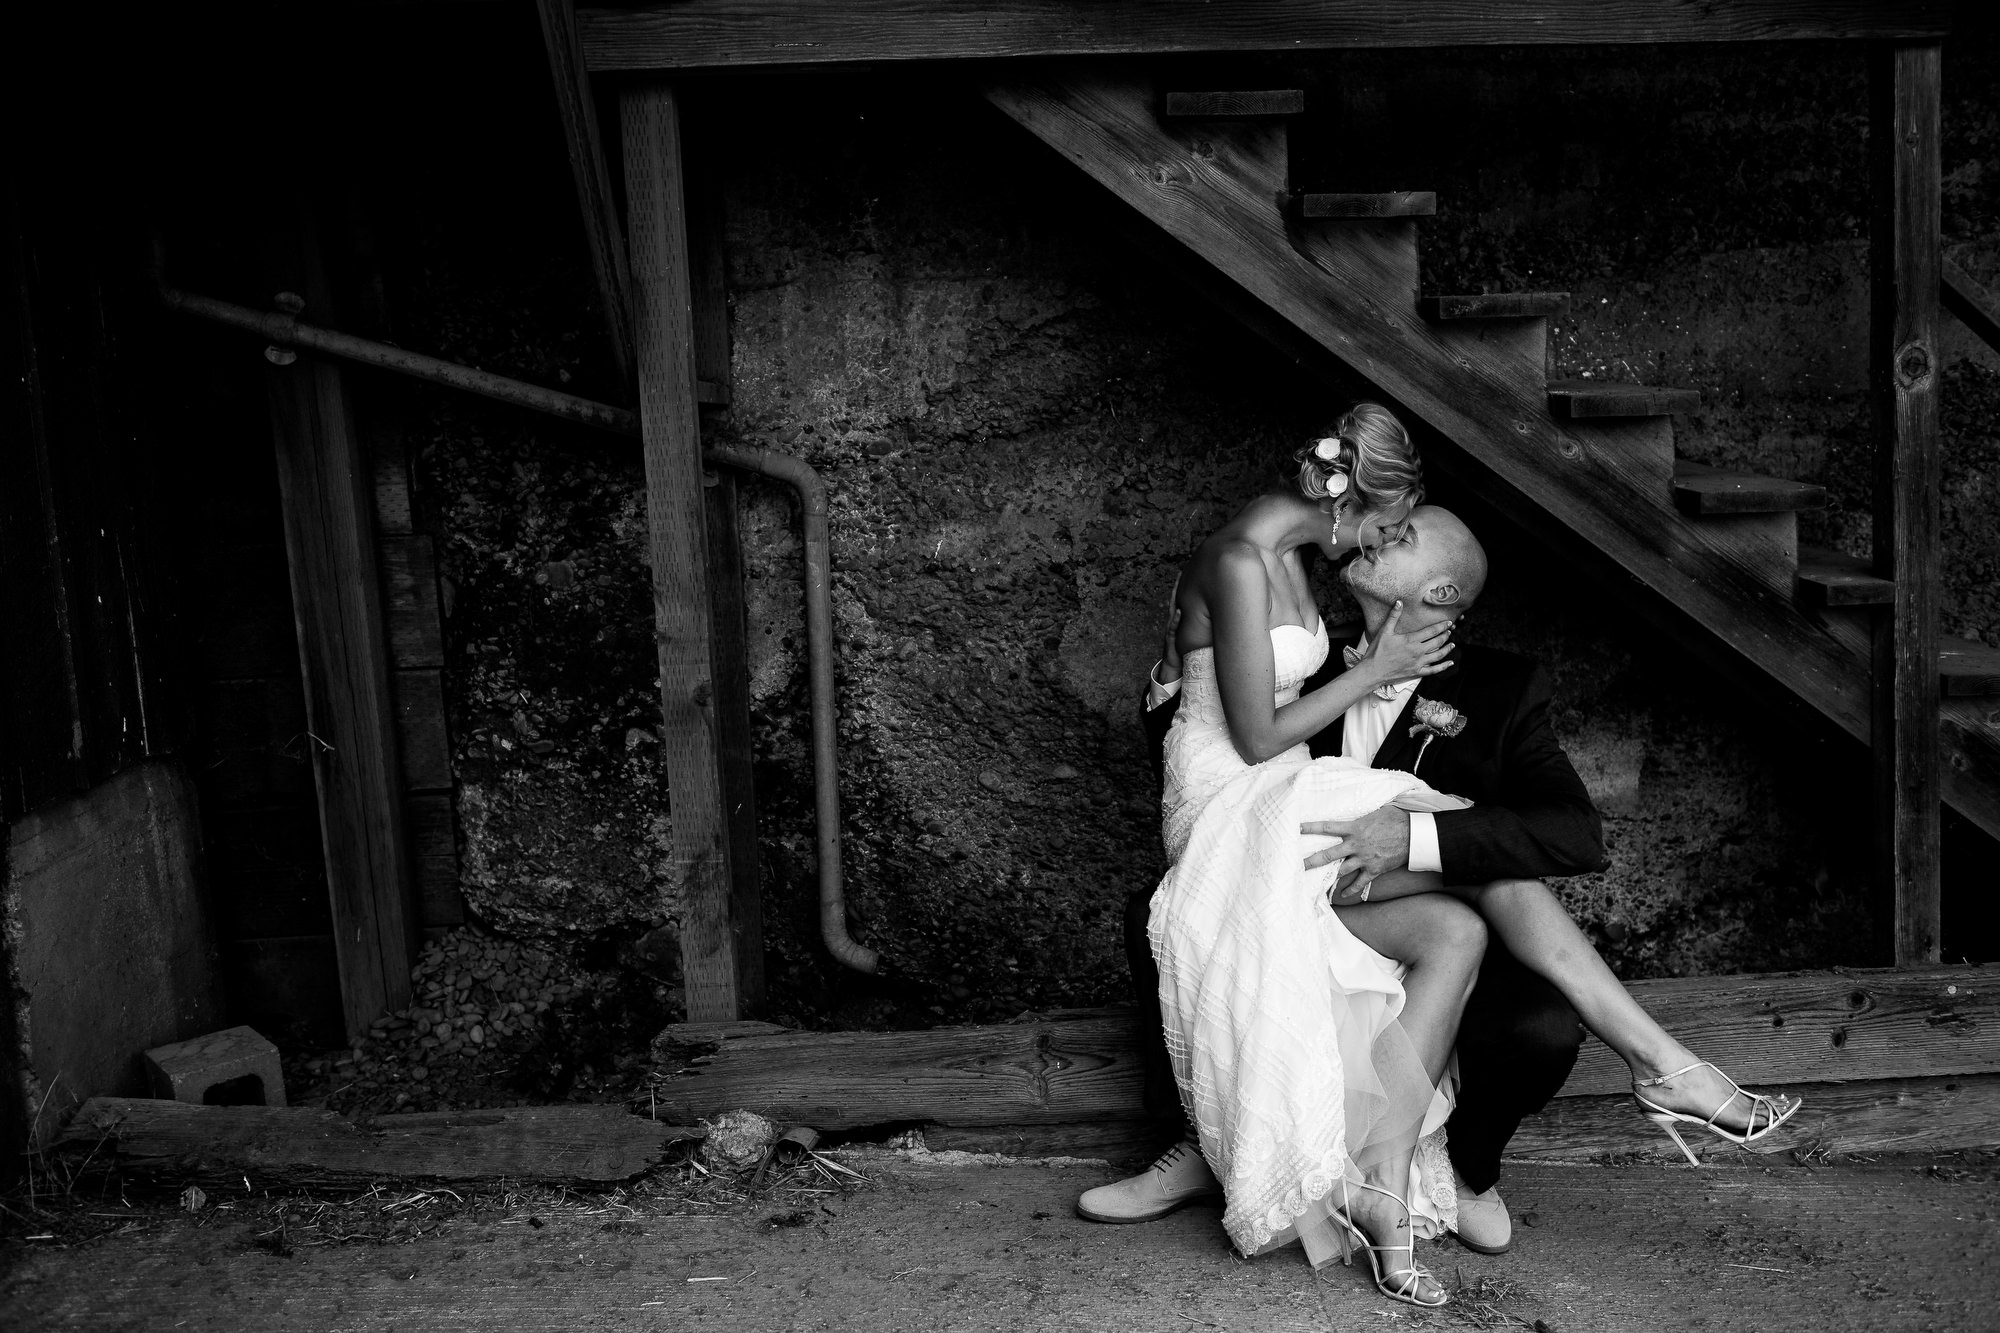 A Portland Oregon Bride and Groom kissing after their wedding ceremony.